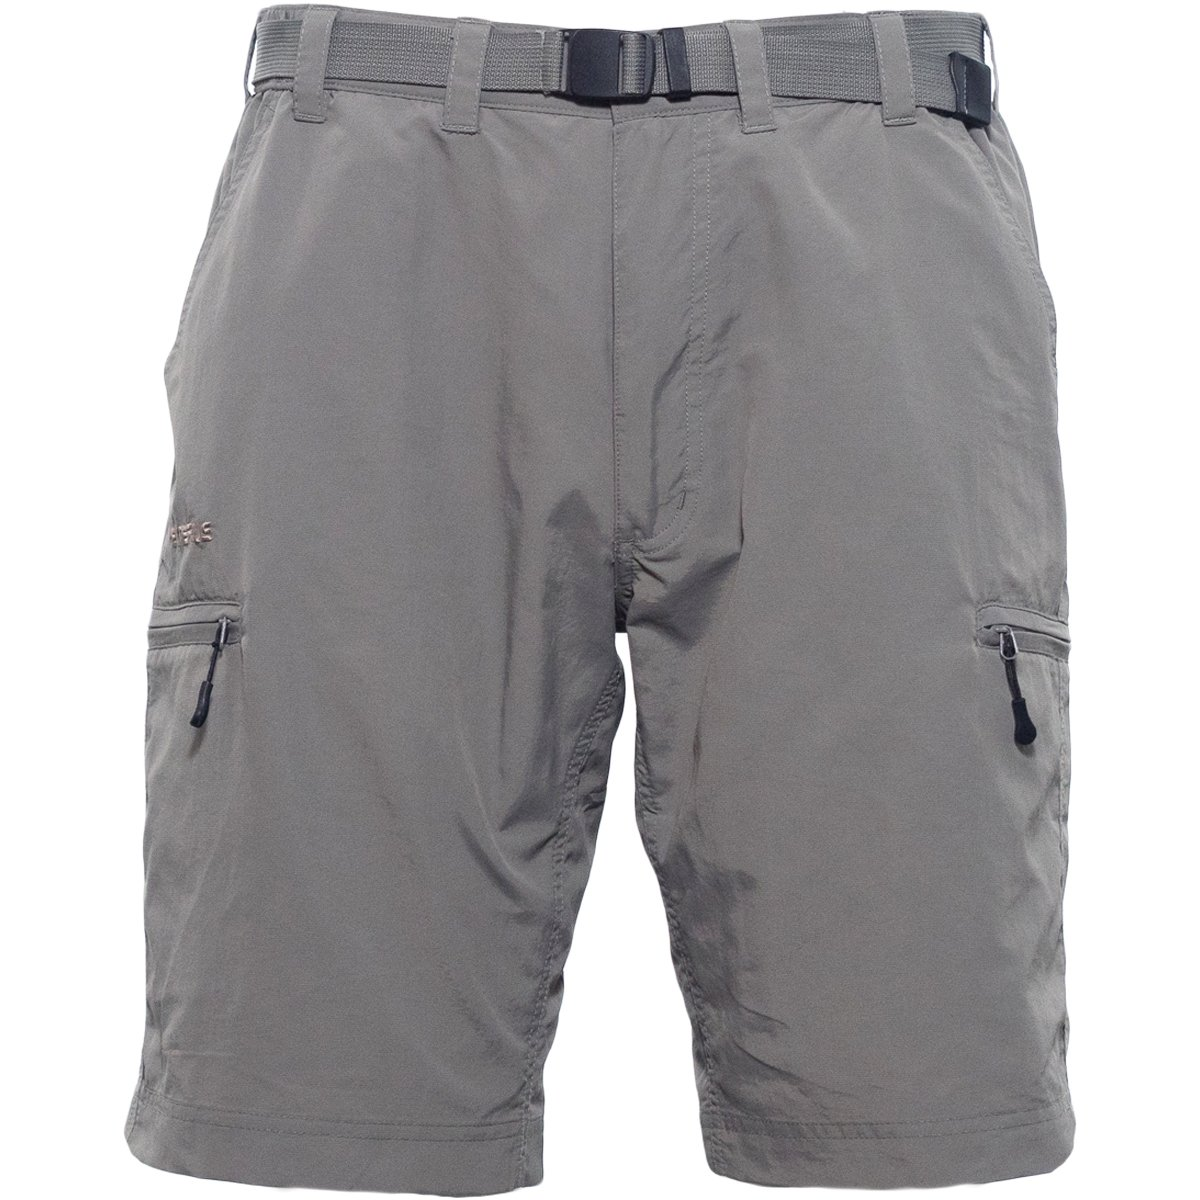 Amazon.com : Mens Moisture Wicking Quick Dry Fabric Breathable ...